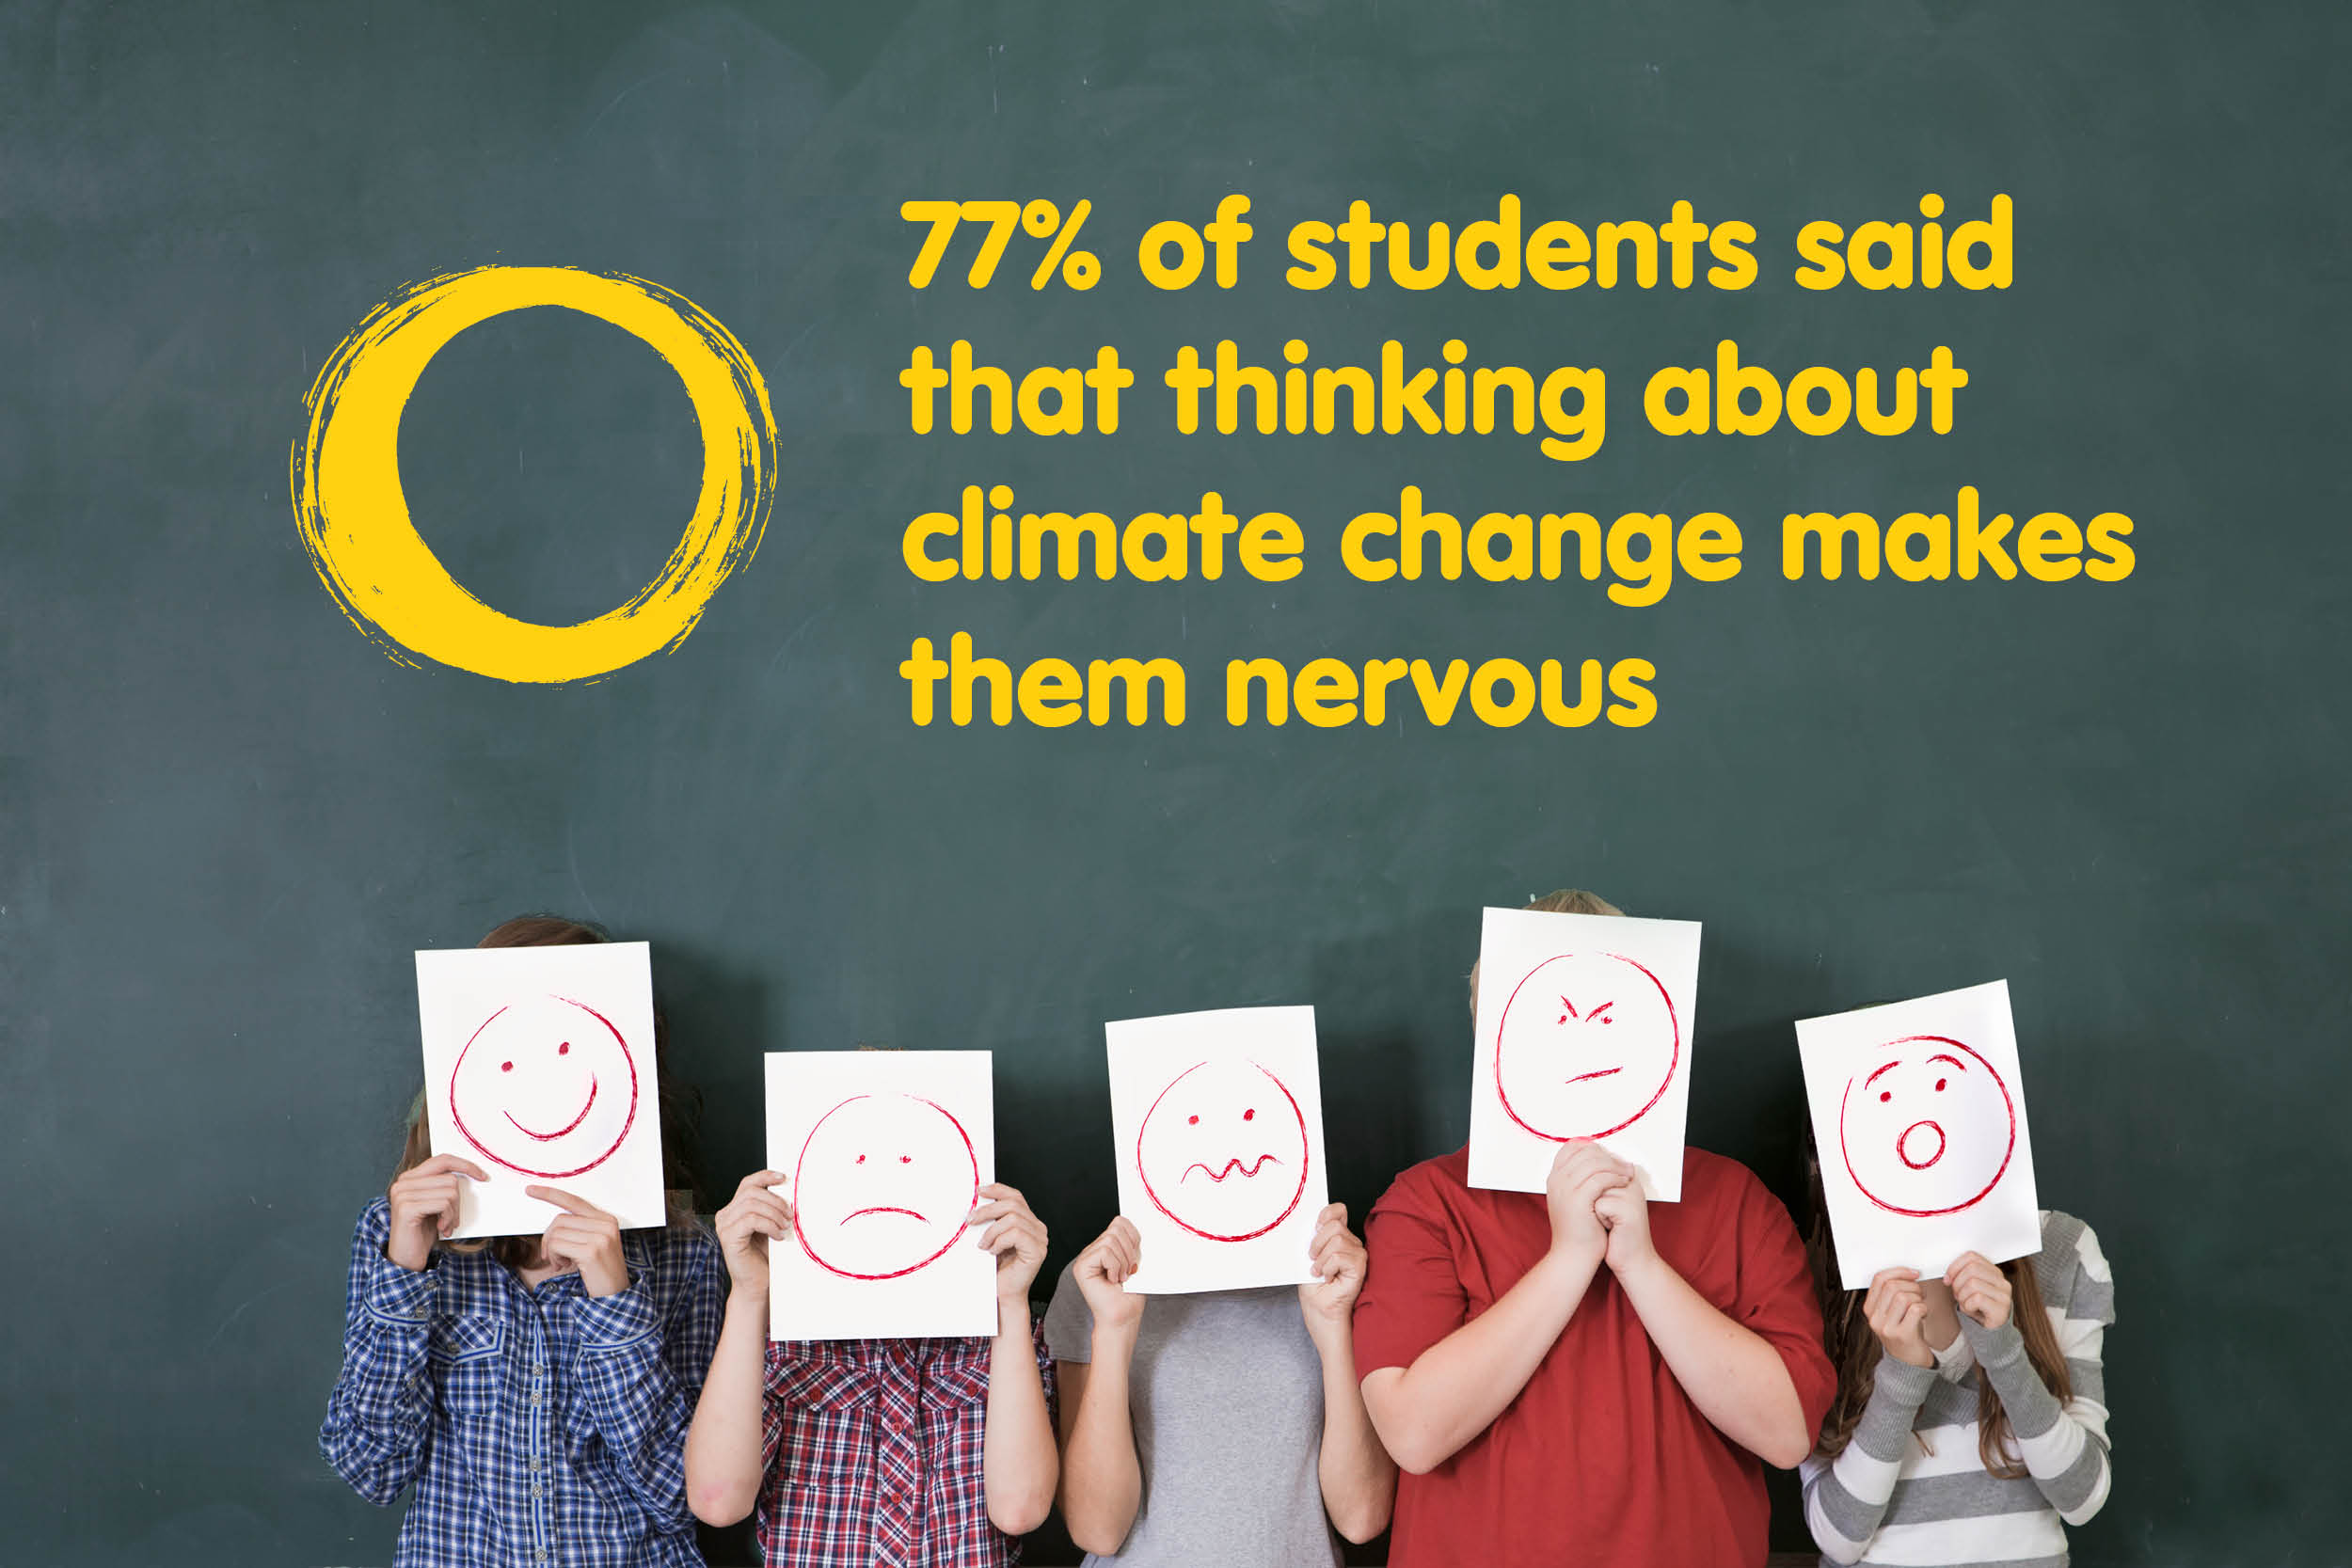 77% of students said that thinking about climate change makes them nervous